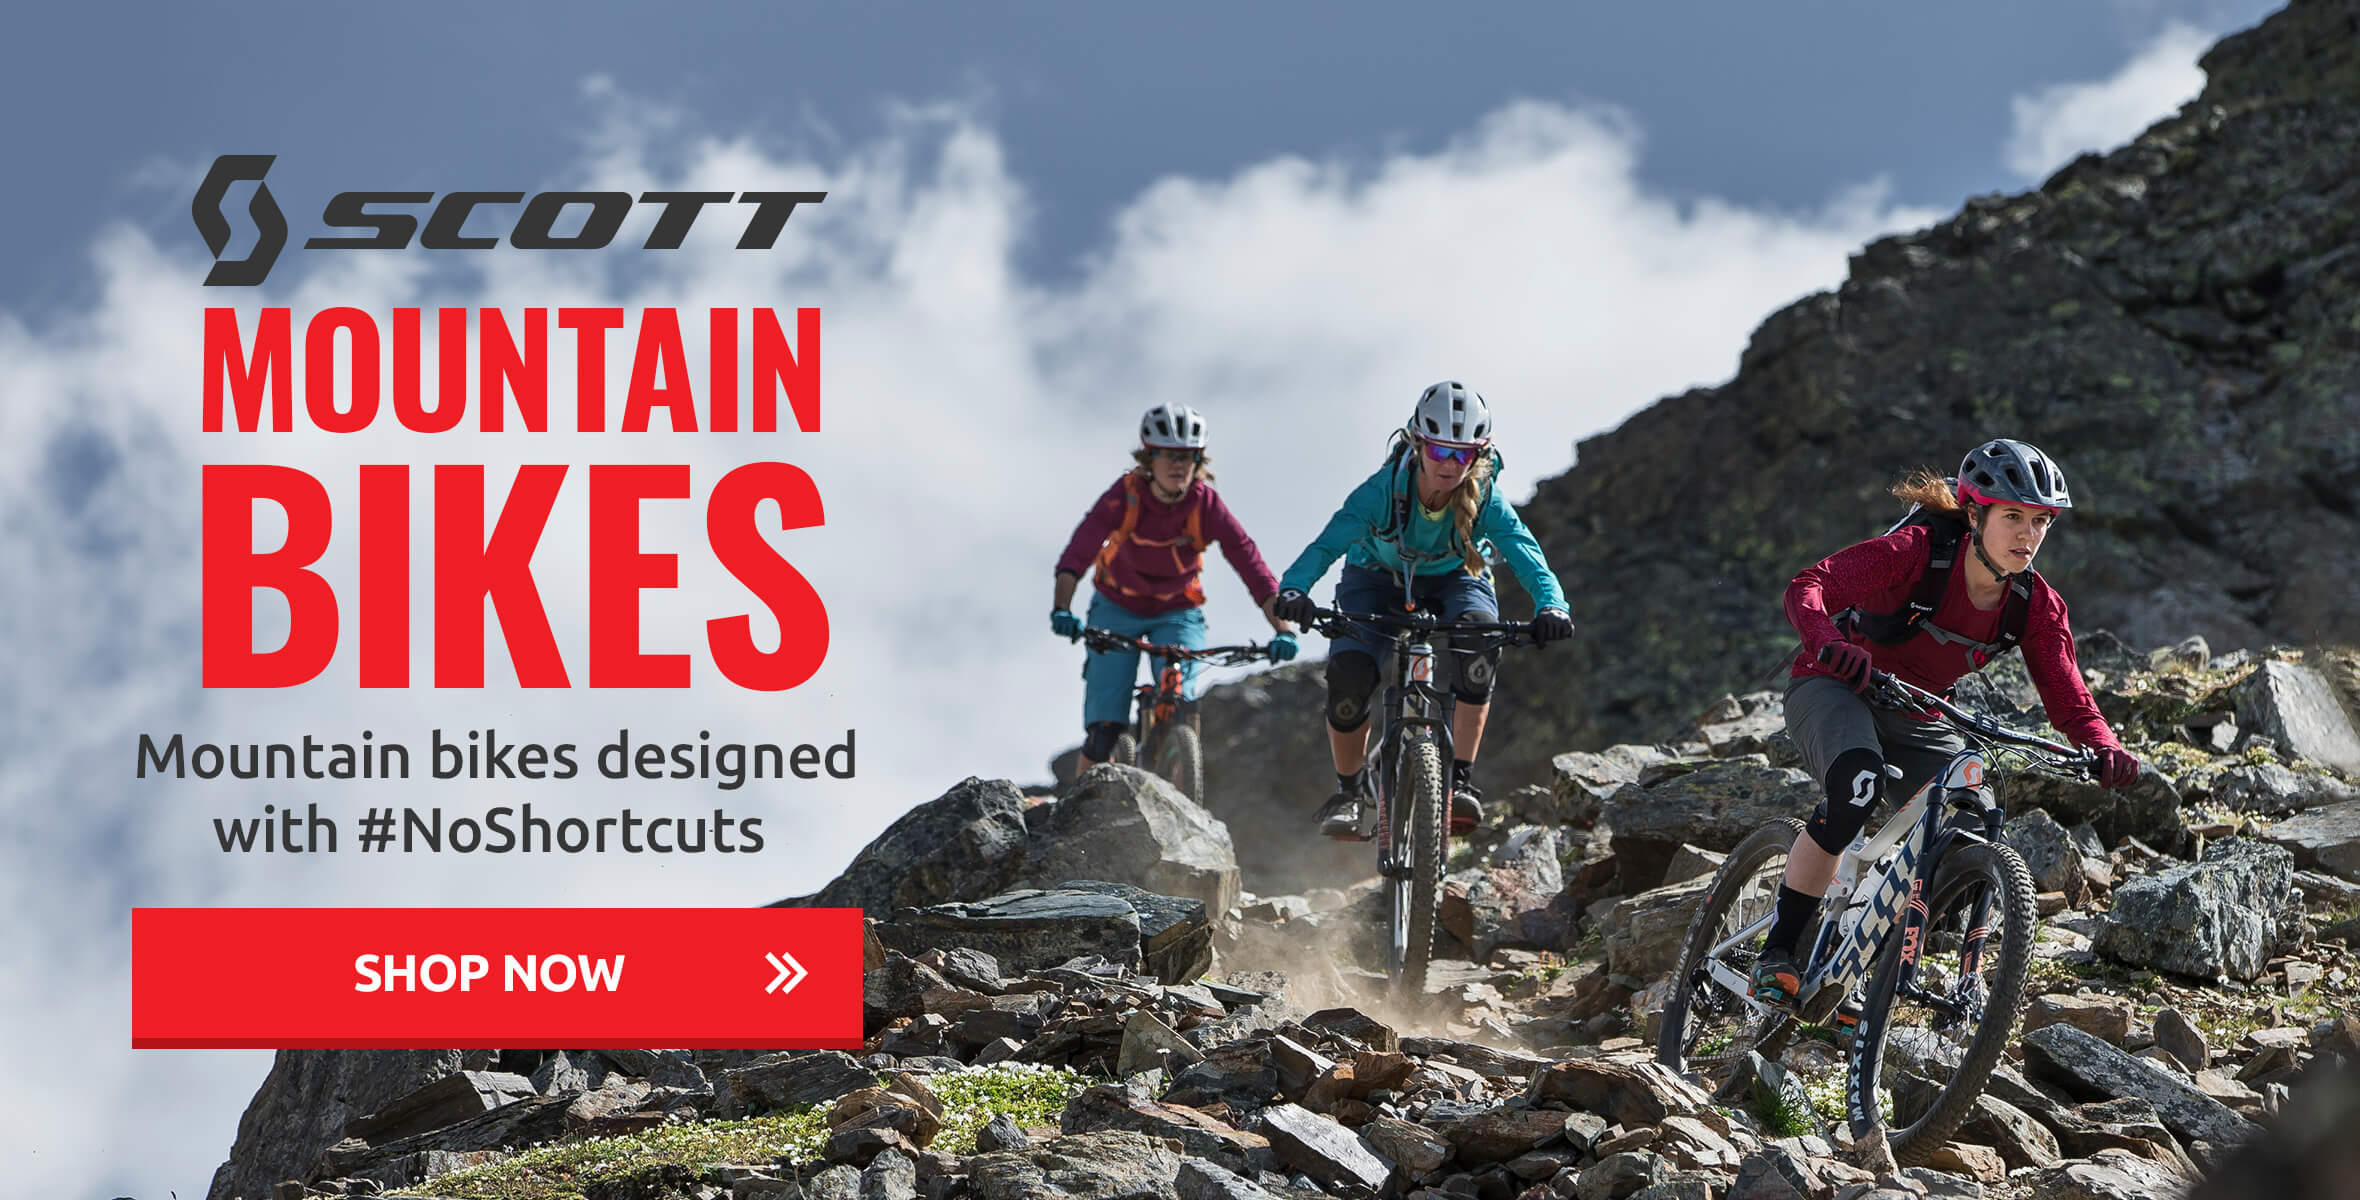 Scott Bikes - Mountain Bikes Designed with #NoShortcuts